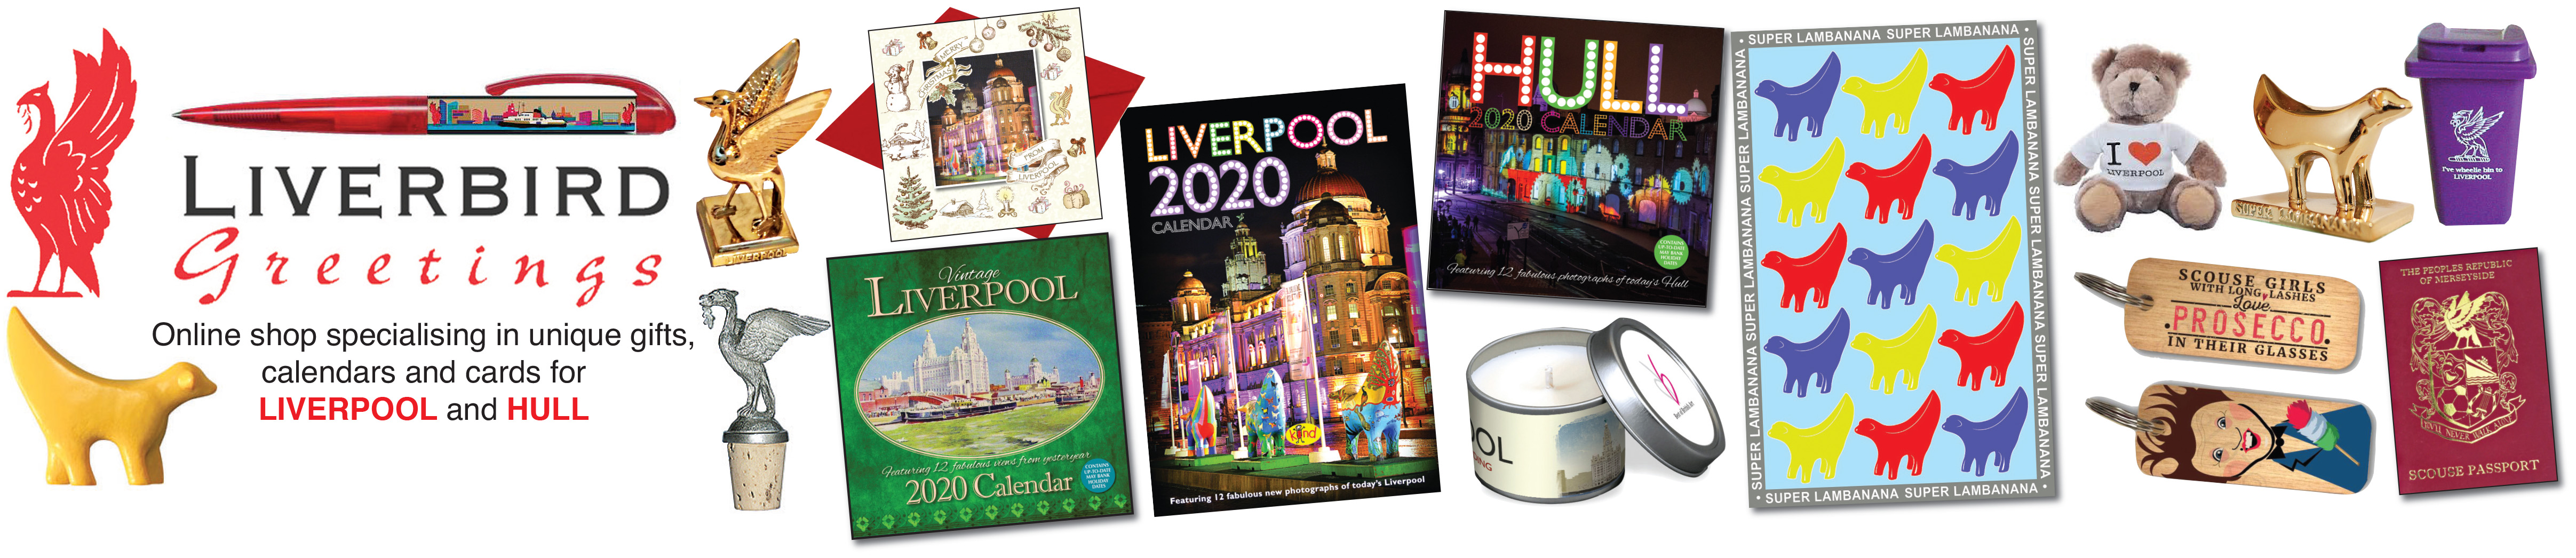 Liverpool gifts, 2020 calendars and cards, Liverpool, Wirral, Hull and Bridge Players